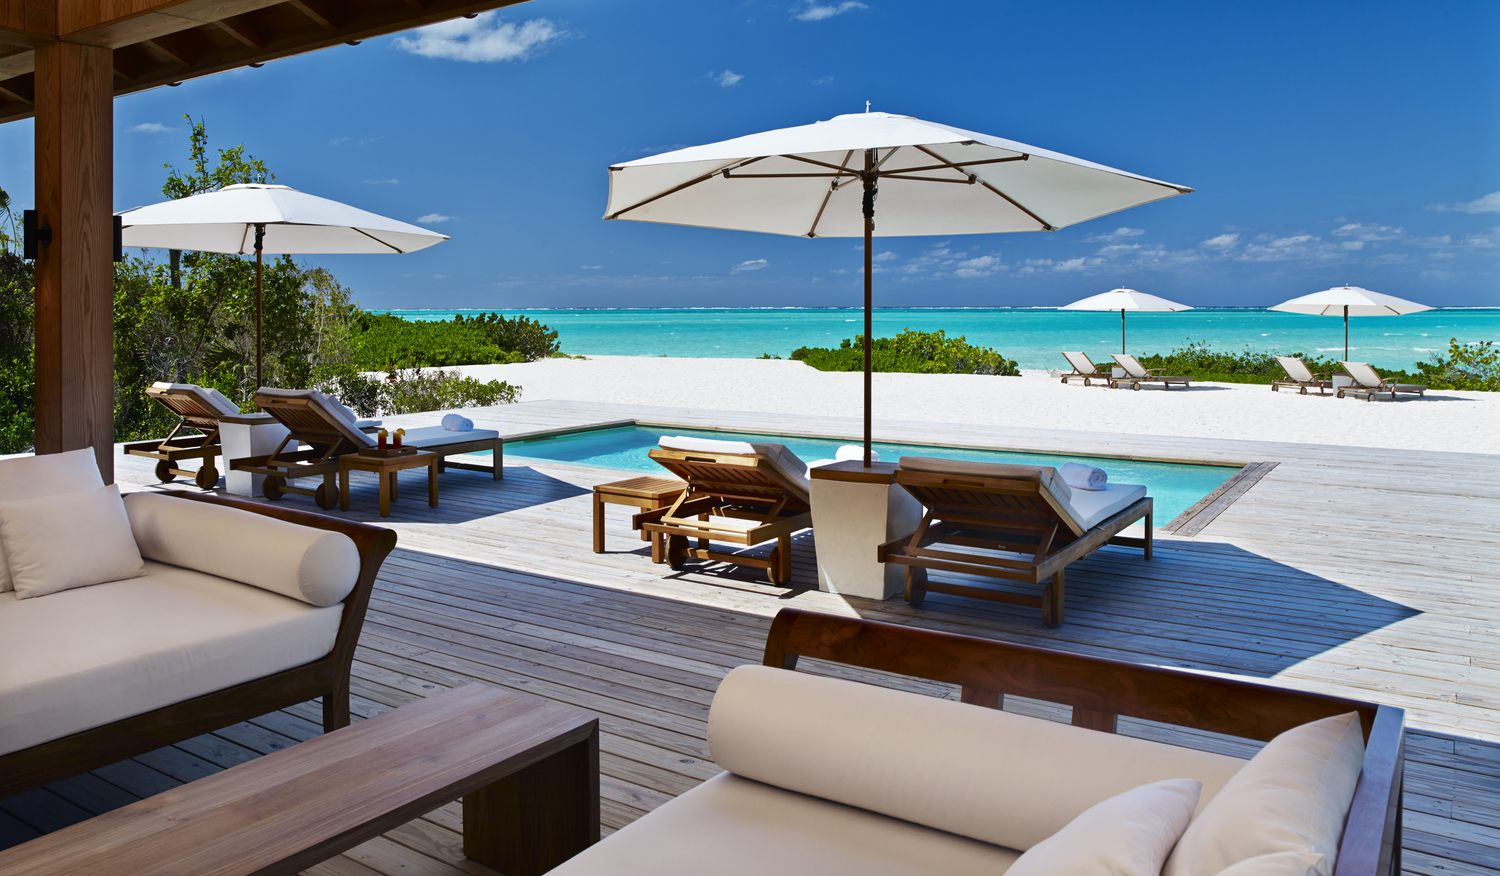 Two Bedroom Beach House Pool Deck The Luxury Travel Expert